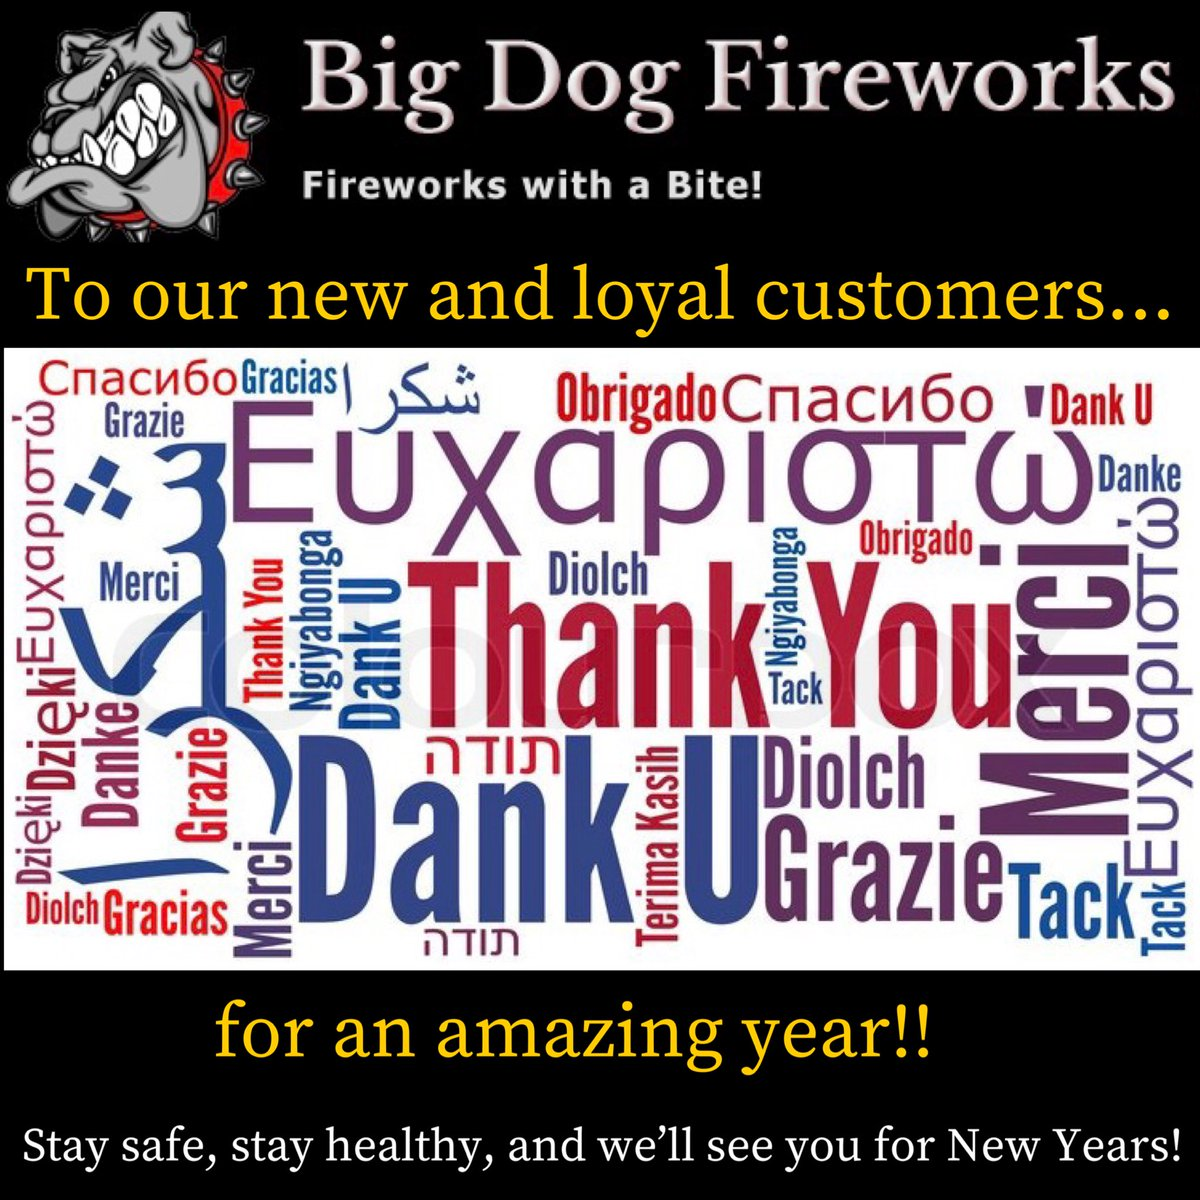 THANK YOU! to everyone who supported us this year and Thank You to all our operators who made this year Awesome! See you all for New Years! . #bigdogfireworks #bigdog #bdf #fireworks #fourthofjuly #july4th #4thofjuly #fireworks2020 #instagood #worldclassfireworks #thankyou